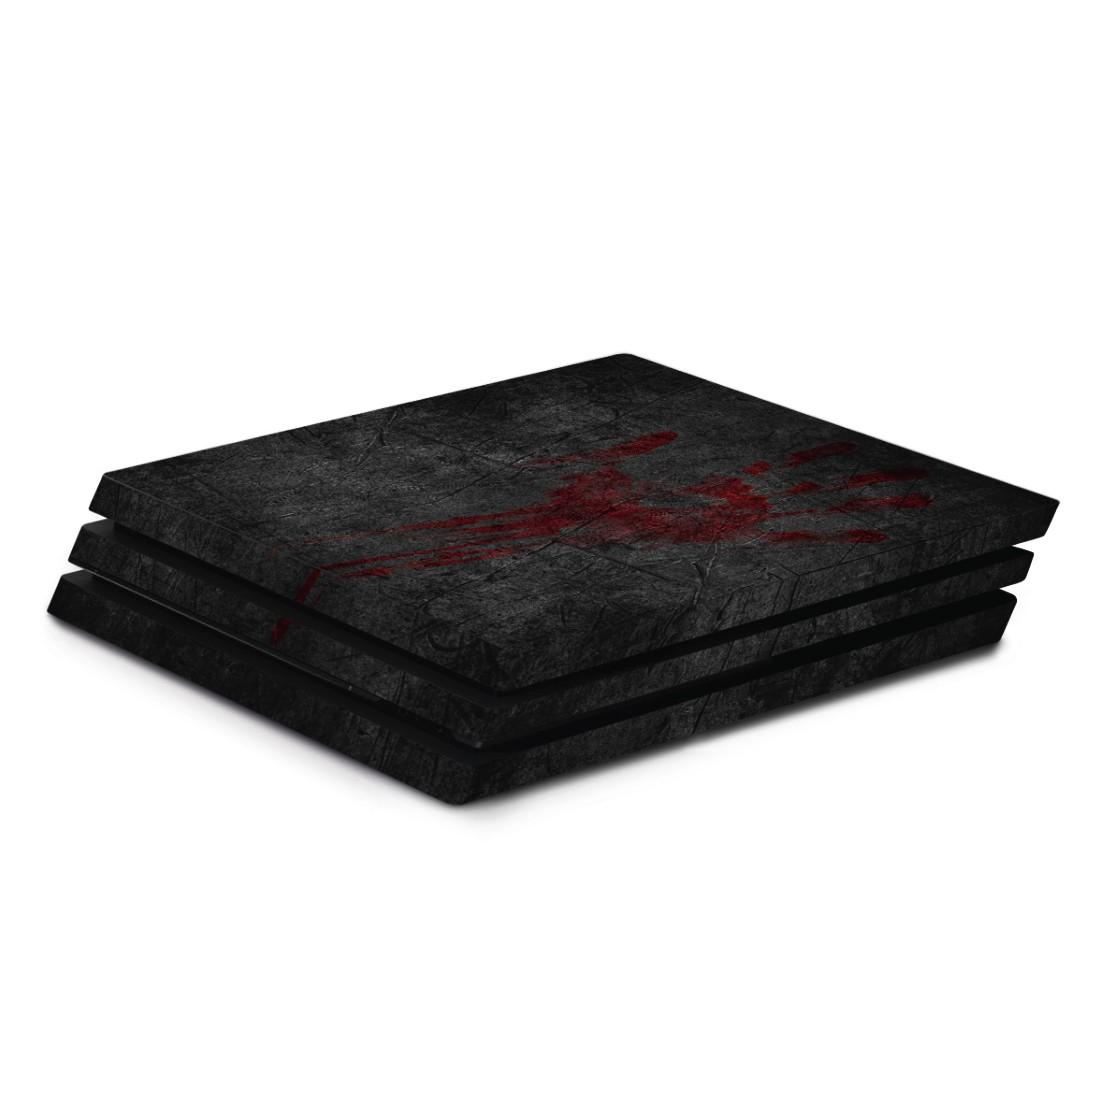 "awx High-Res Appliance - Hama, ""Undead"" Design Skin for PlayStation 4 PRO"